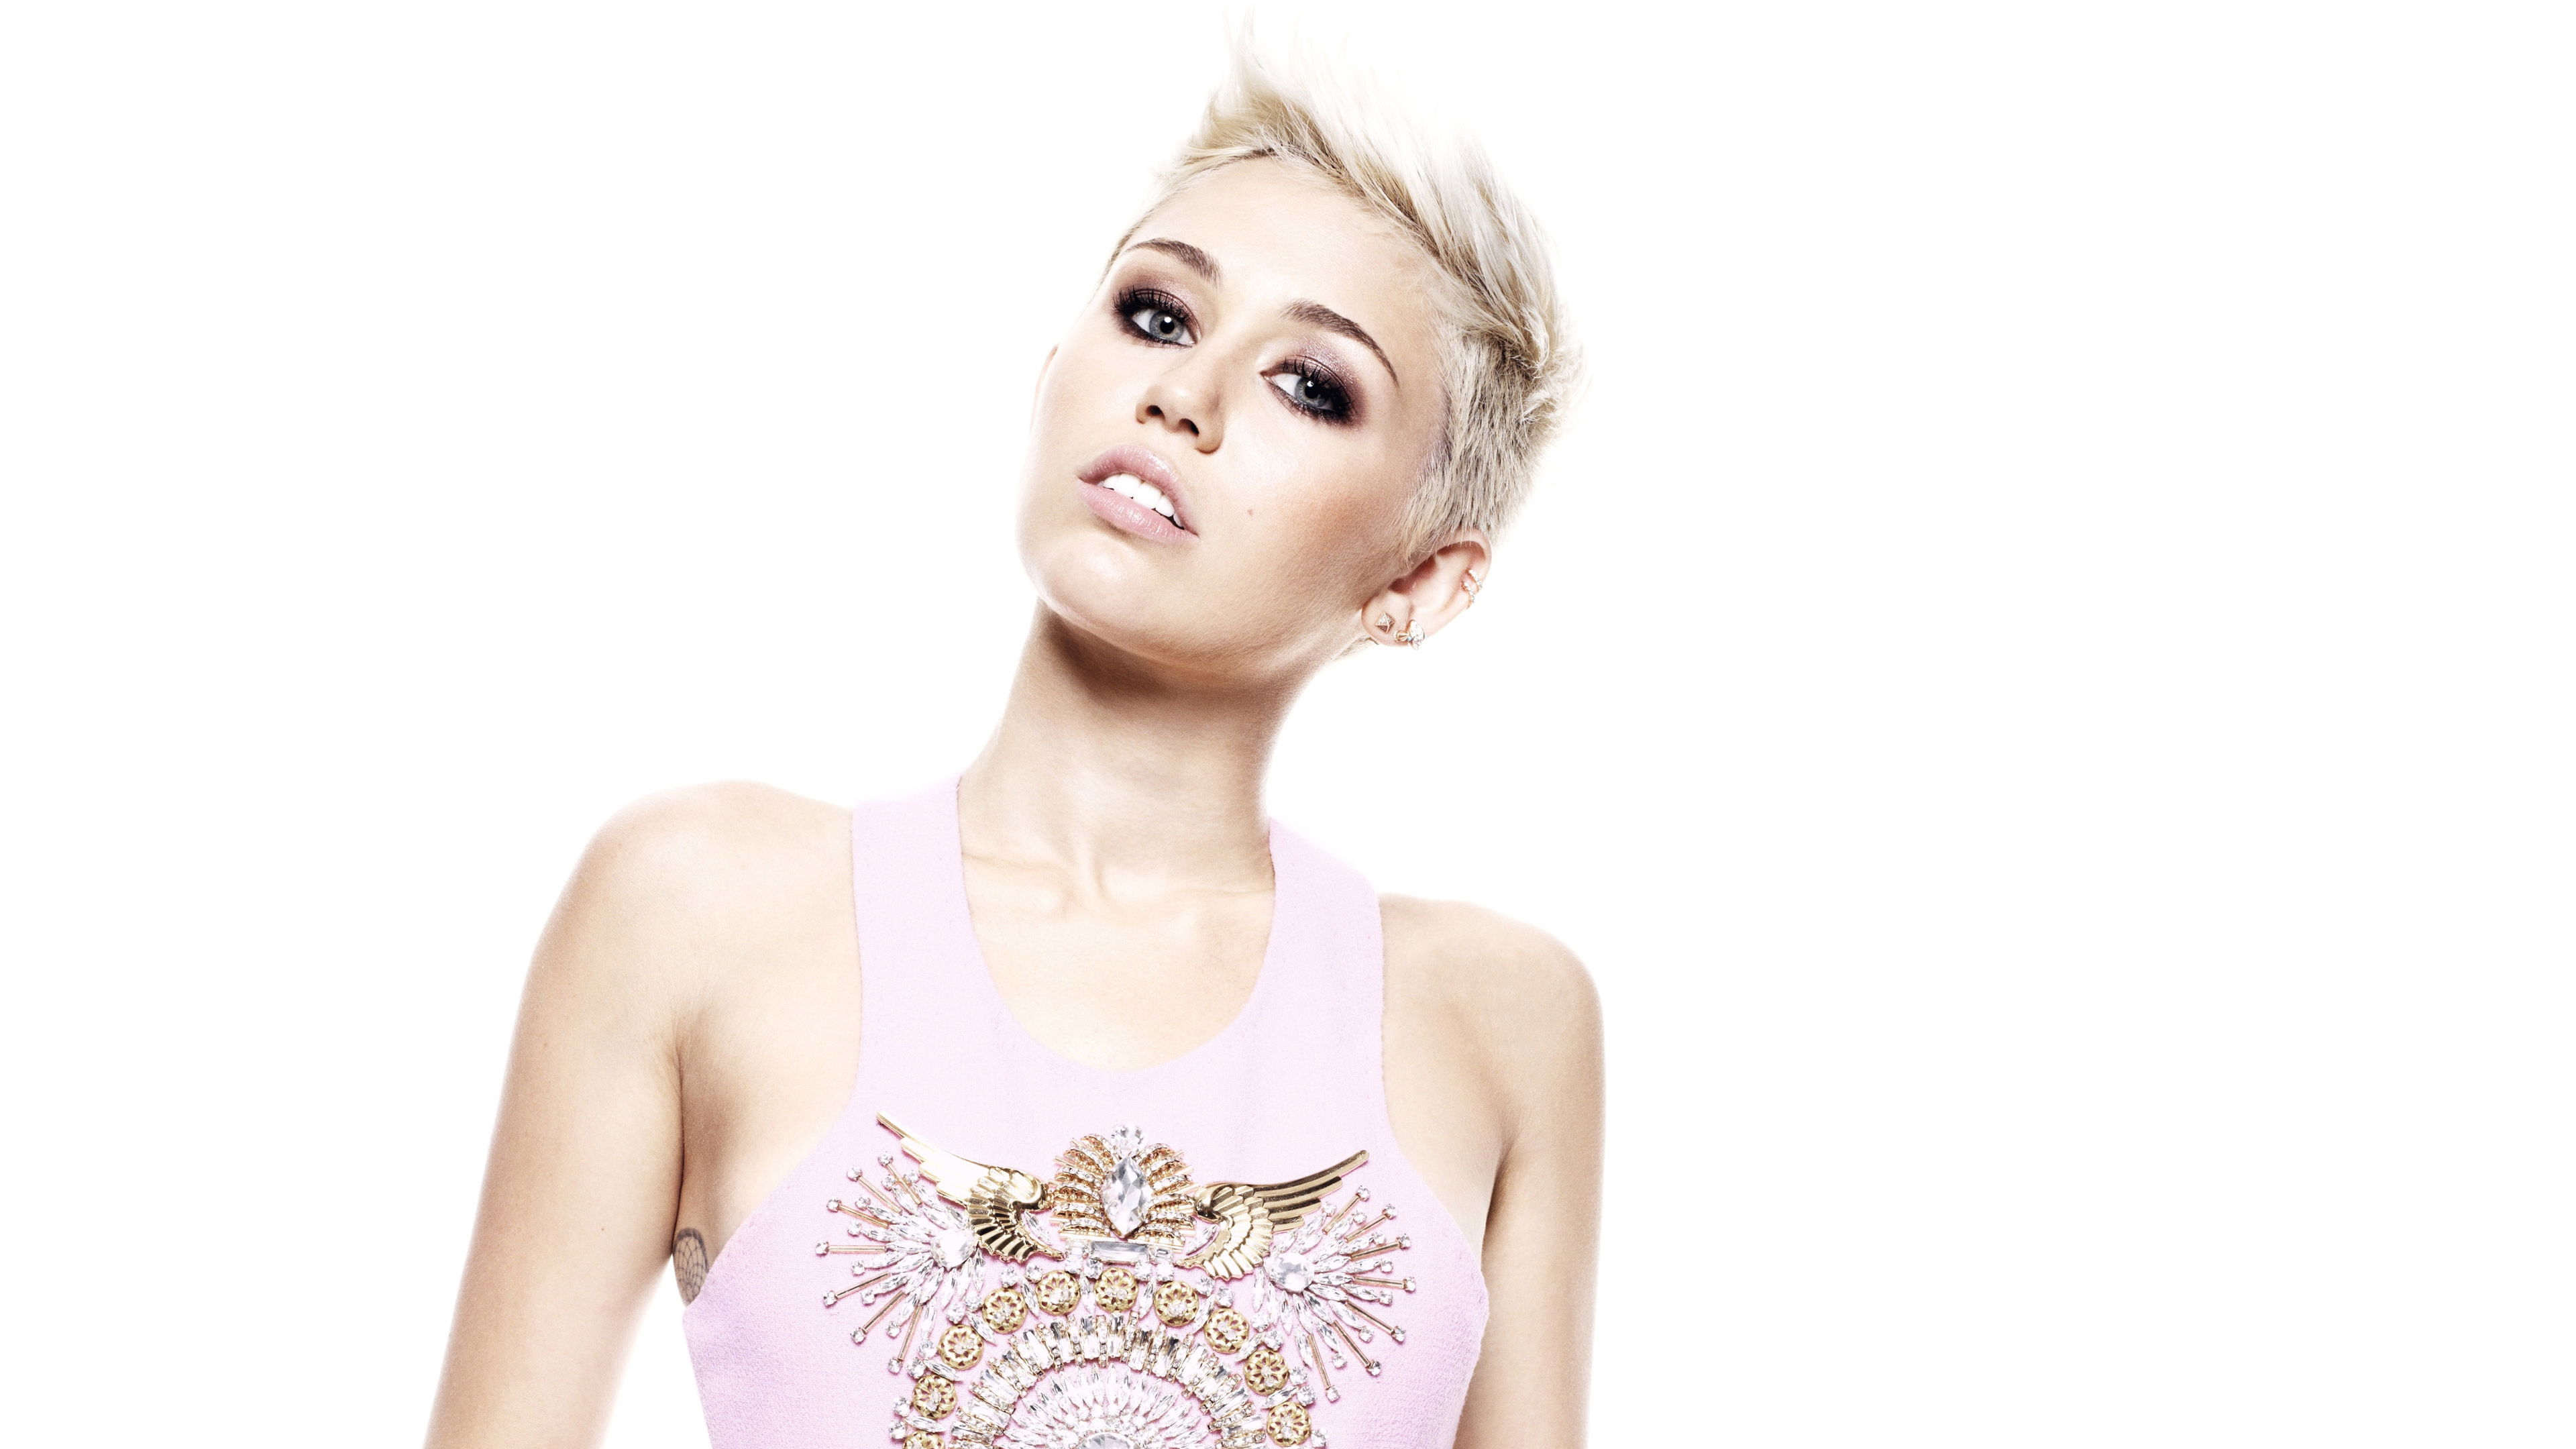 miley cyrus 4k new 1546276969 - Miley Cyrus 4k New - music wallpapers, miley cyrus wallpapers, hd-wallpapers, girls wallpapers, celebrities wallpapers, 4k-wallpapers